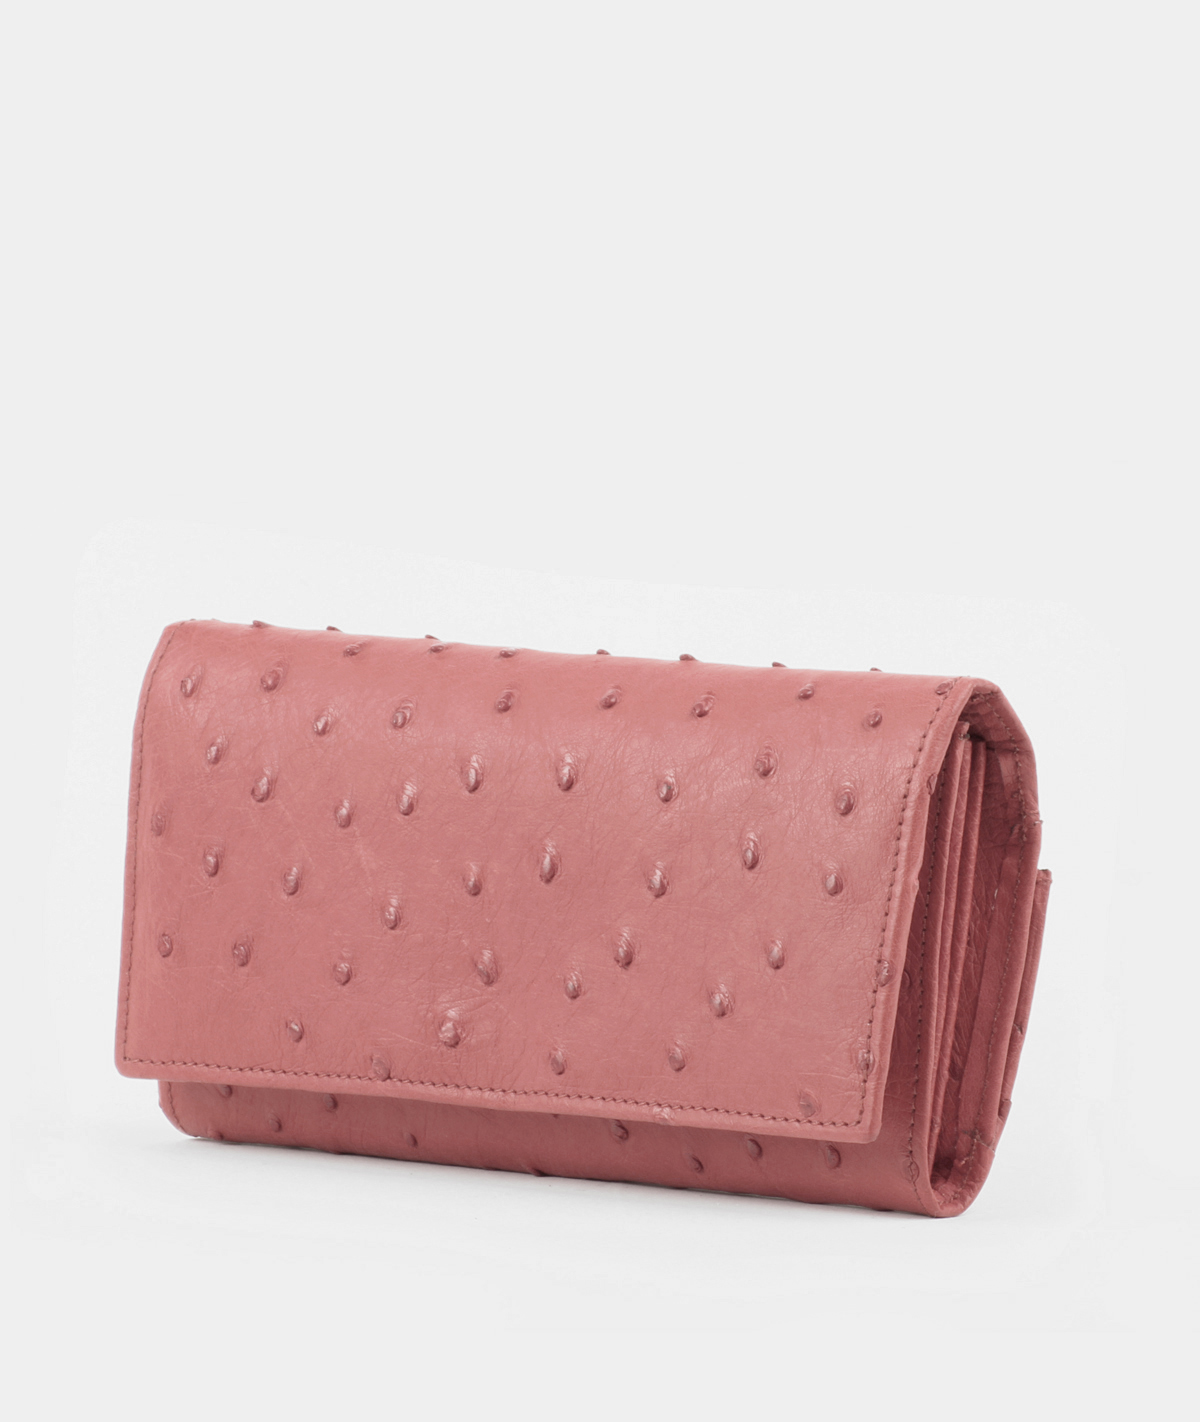 WOMENS WALLET IN PETAL PINK